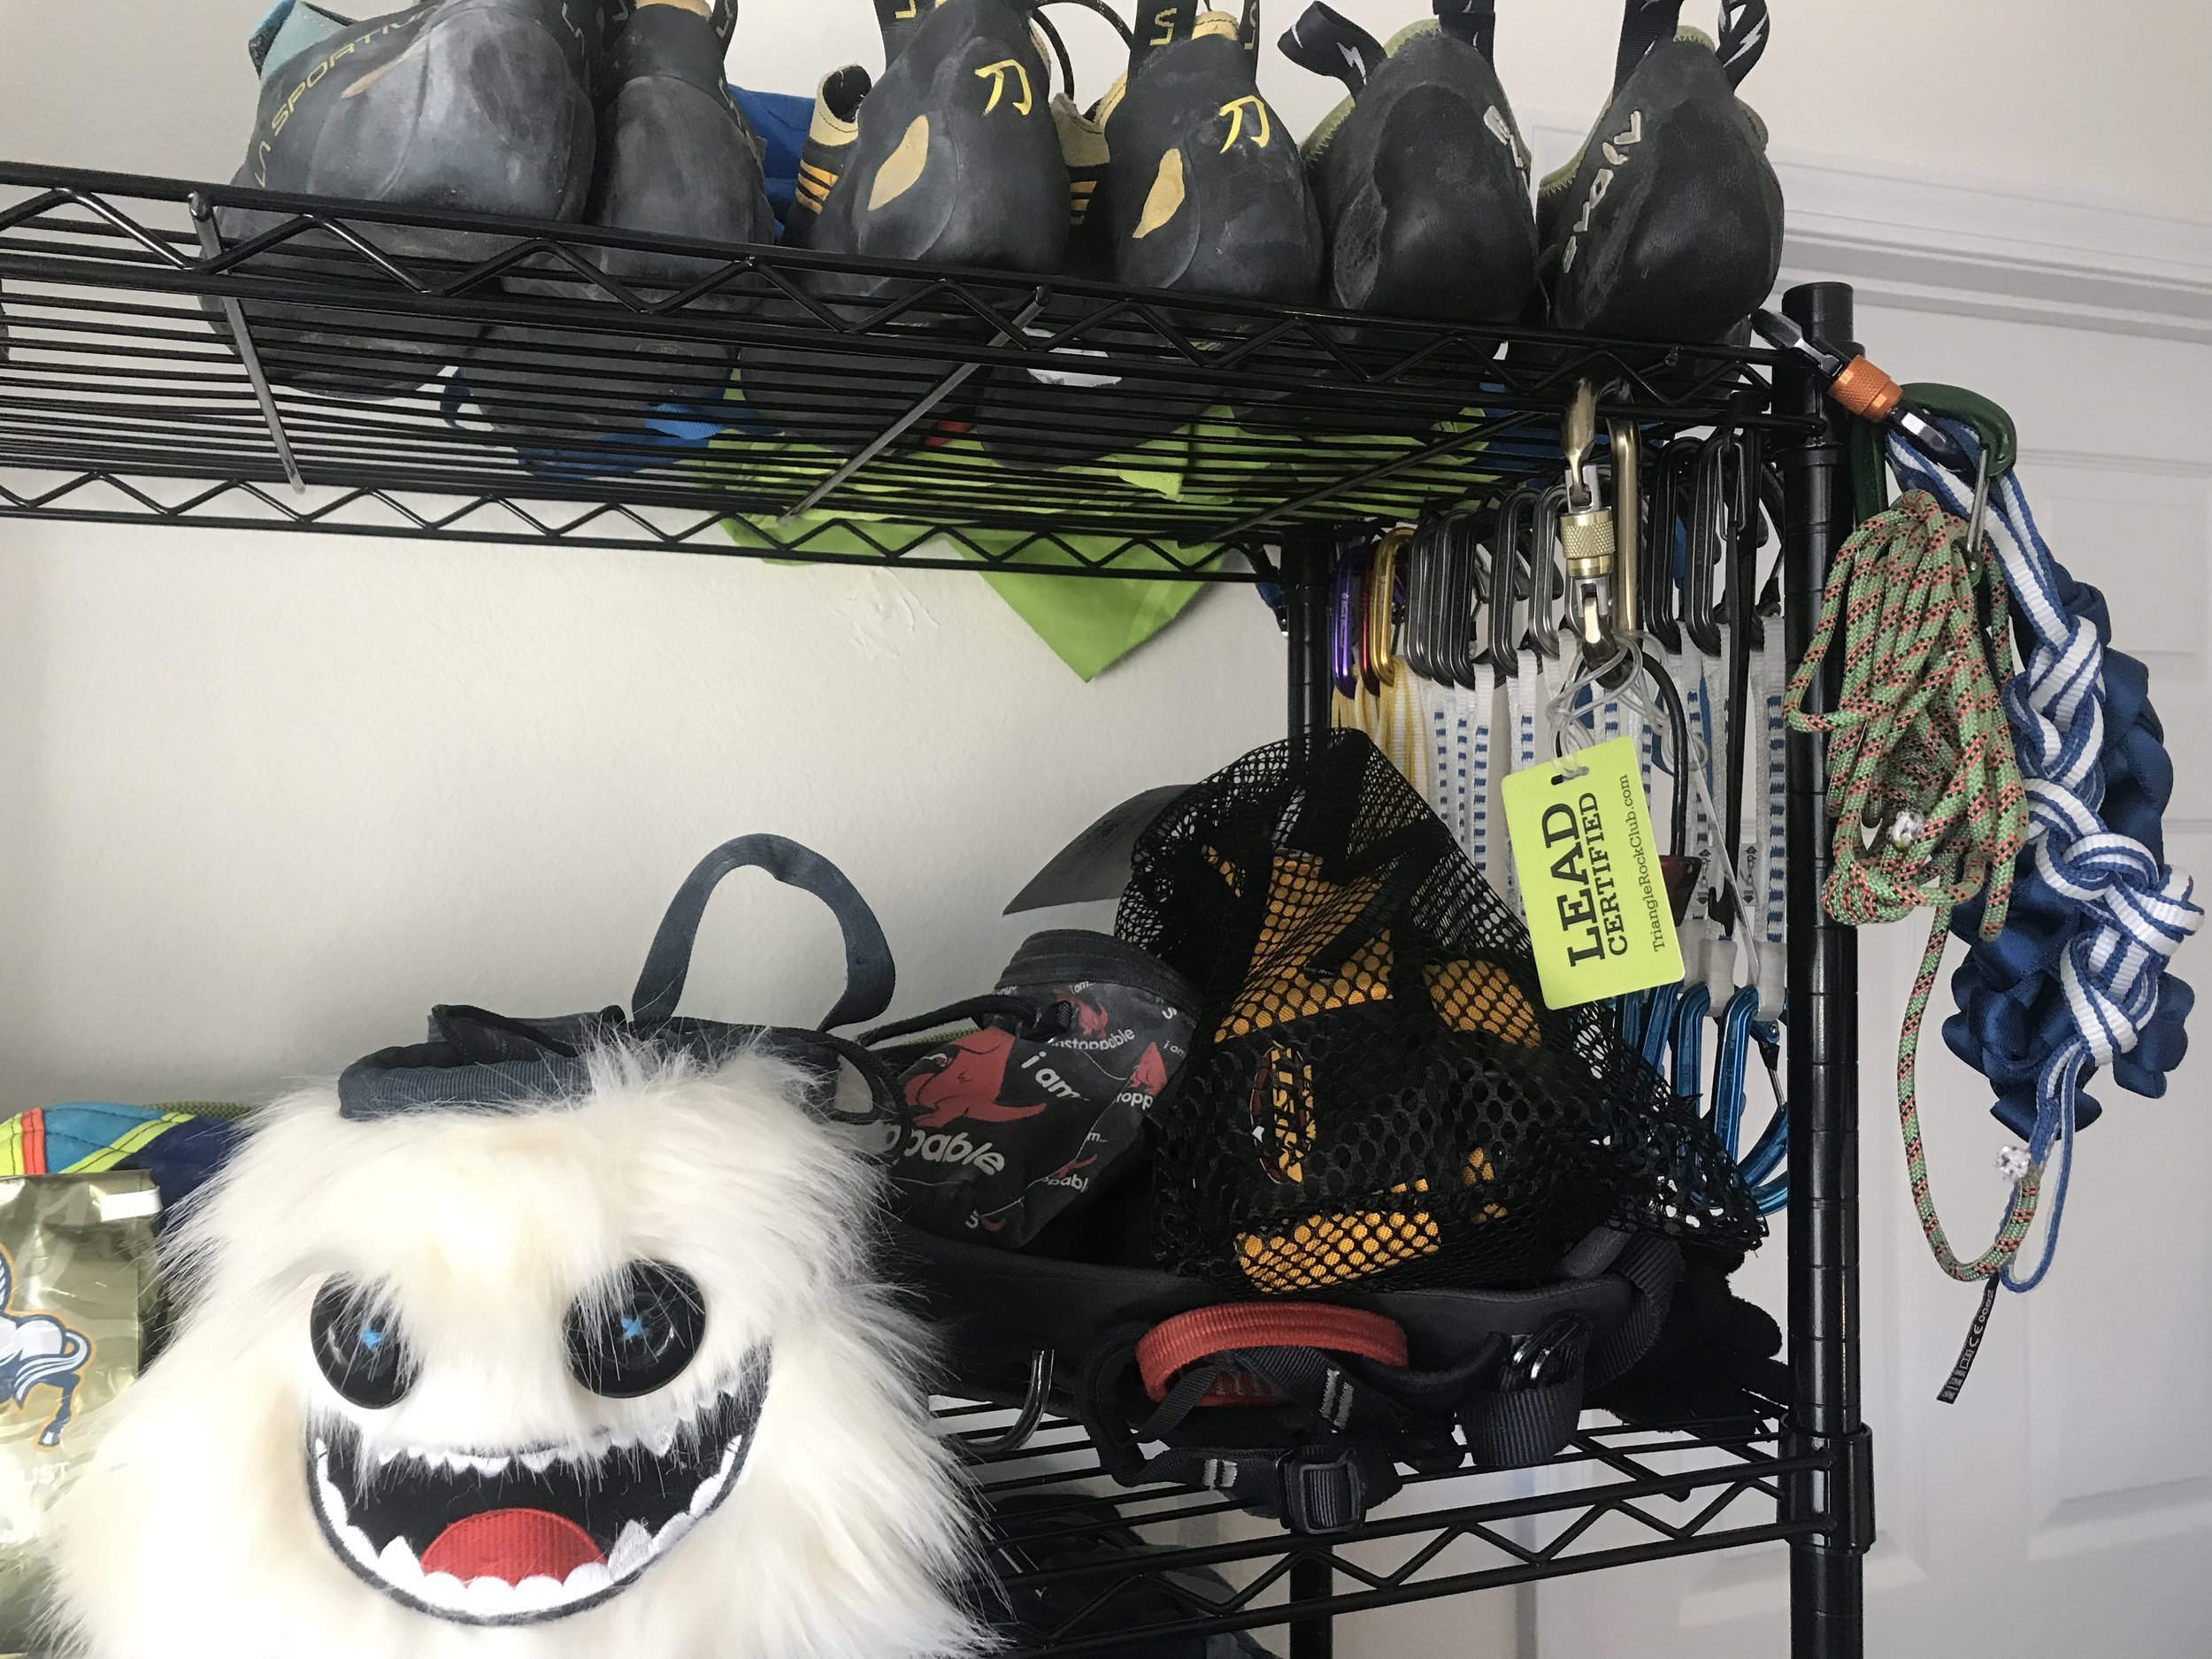 Some of the things on my gear rack...